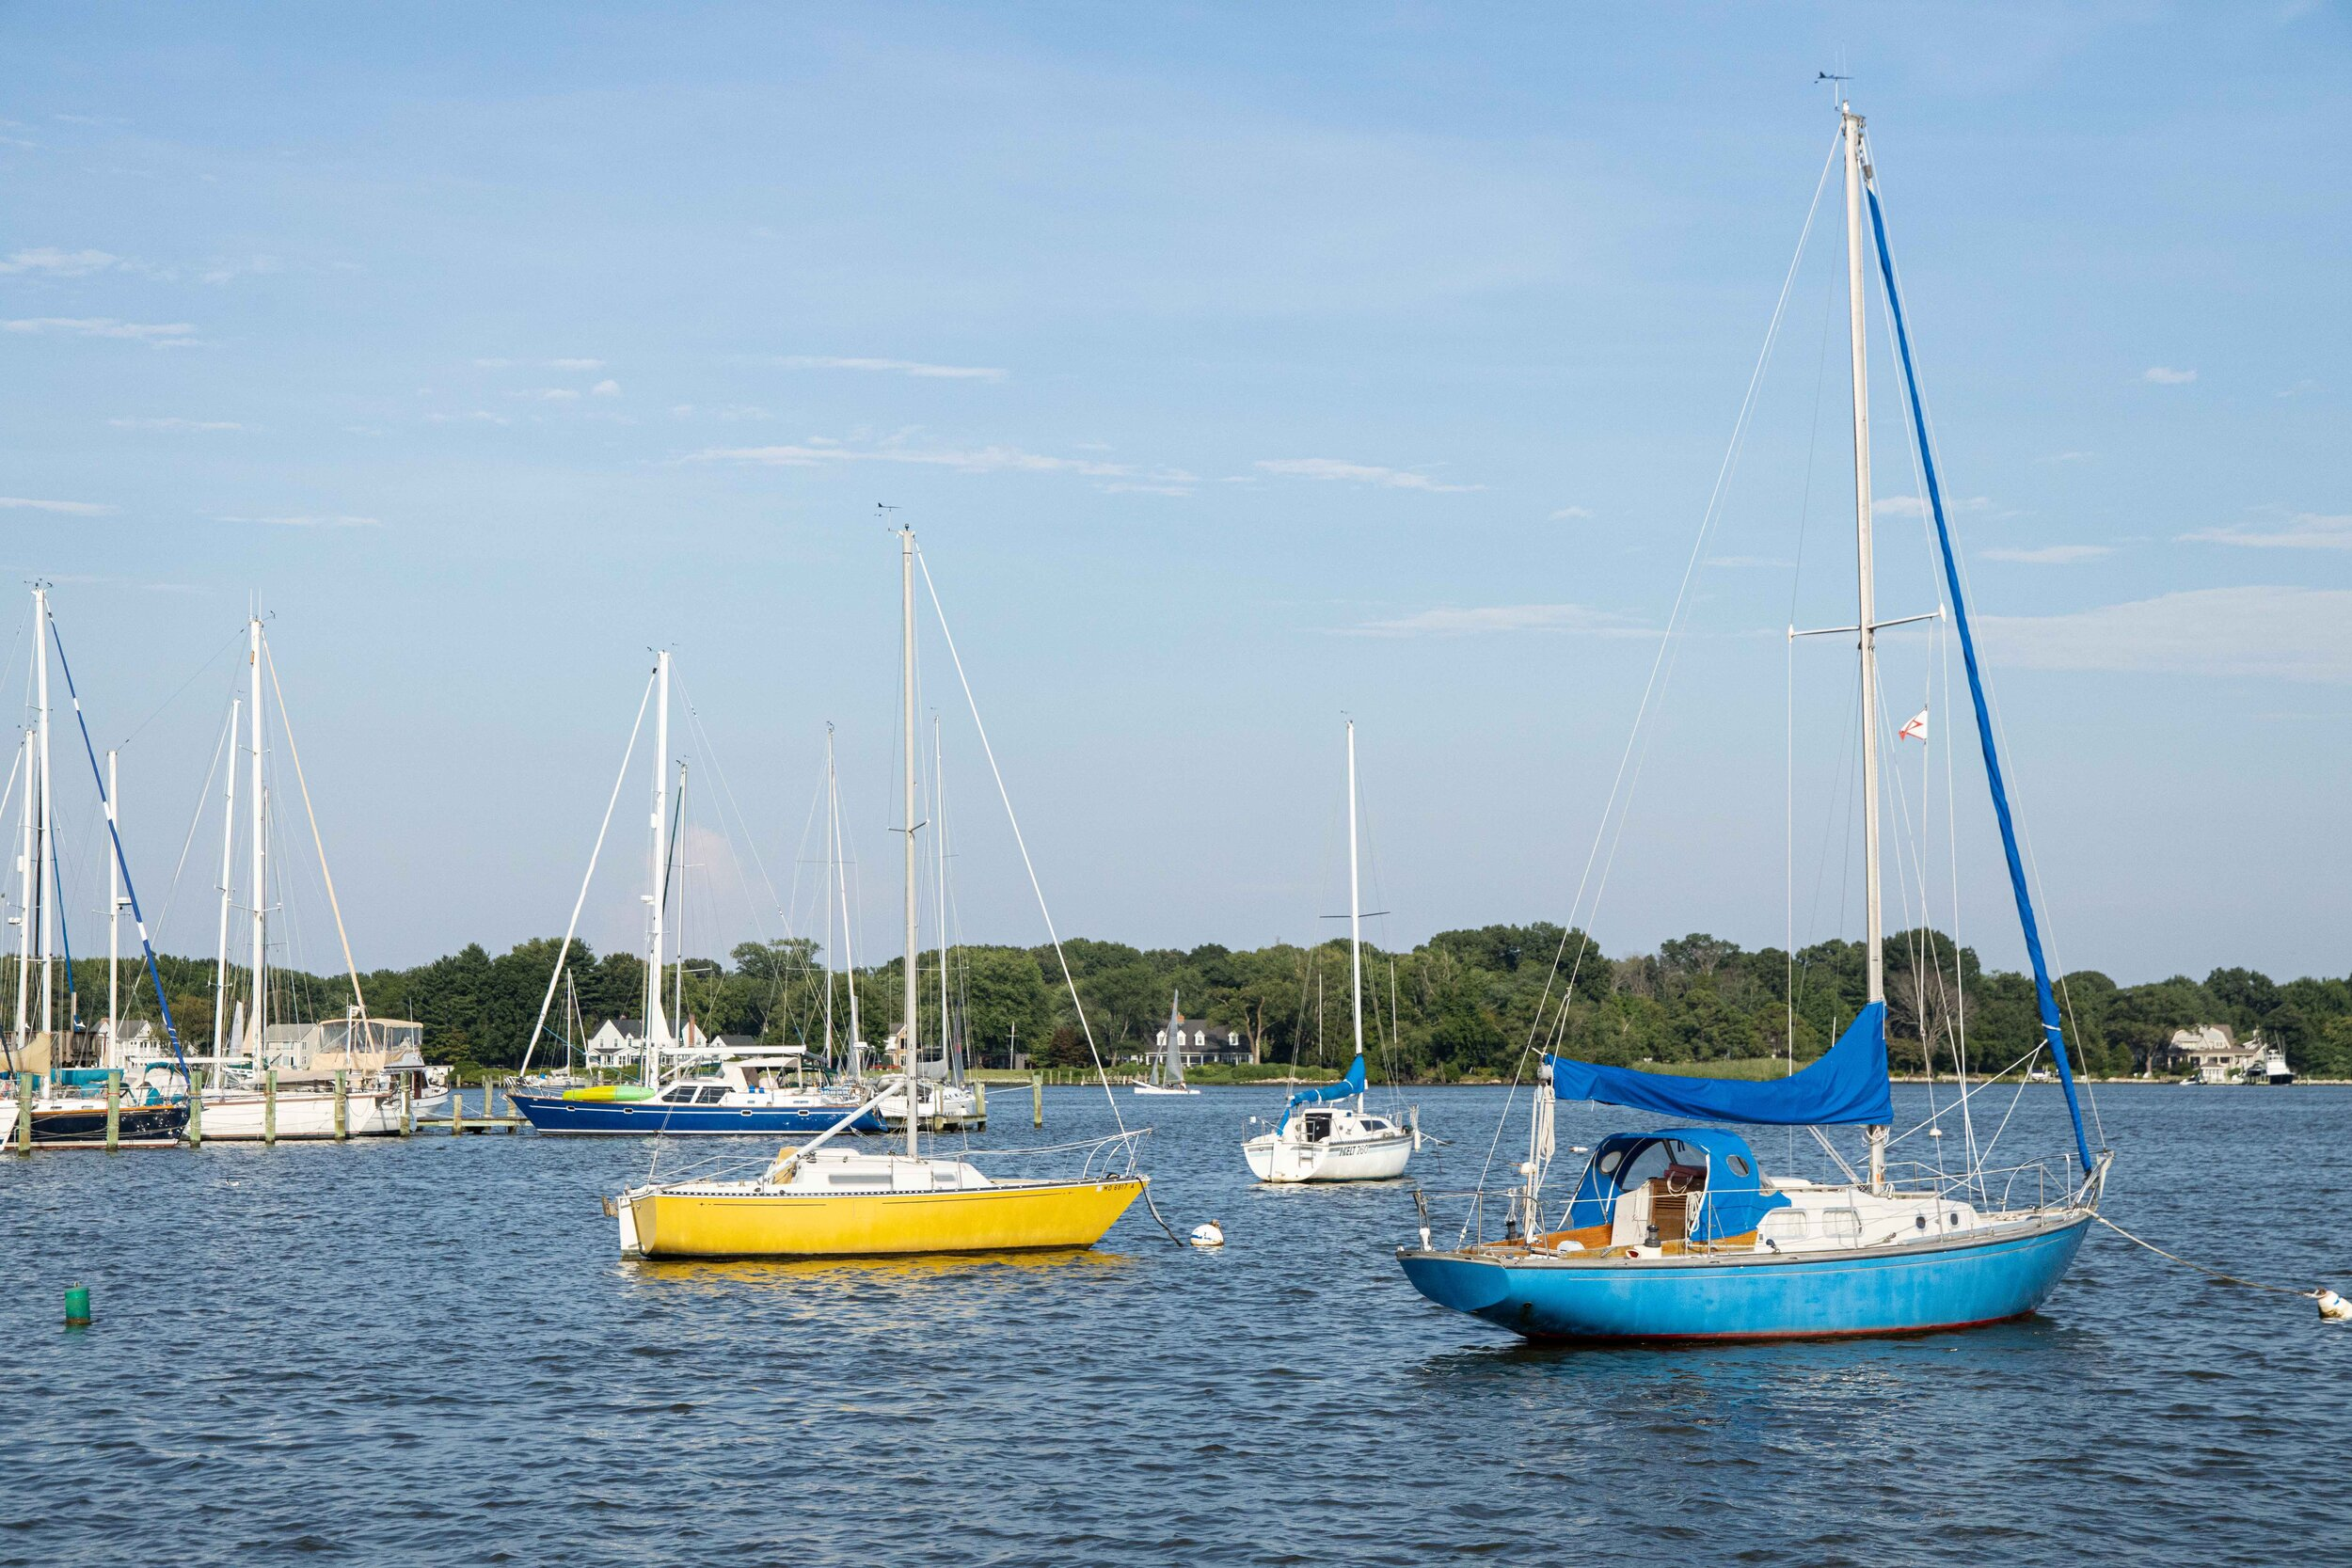 visitannapolis.org - For more information and travel ideas!